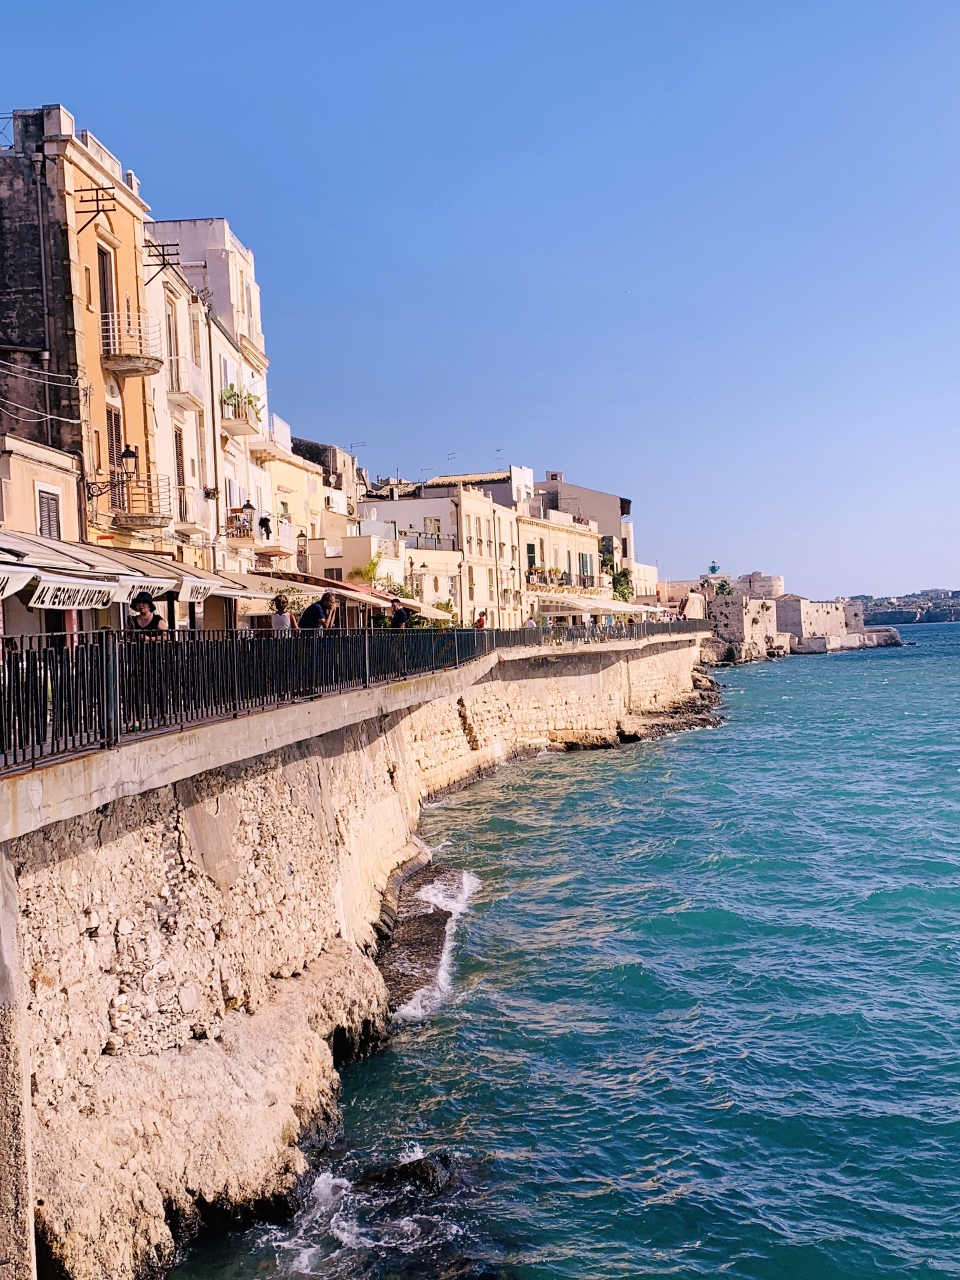 Travels to Sicily – Noto, Siracusa, Ragusa & Agrigento (Part 2 of 3) Image 11